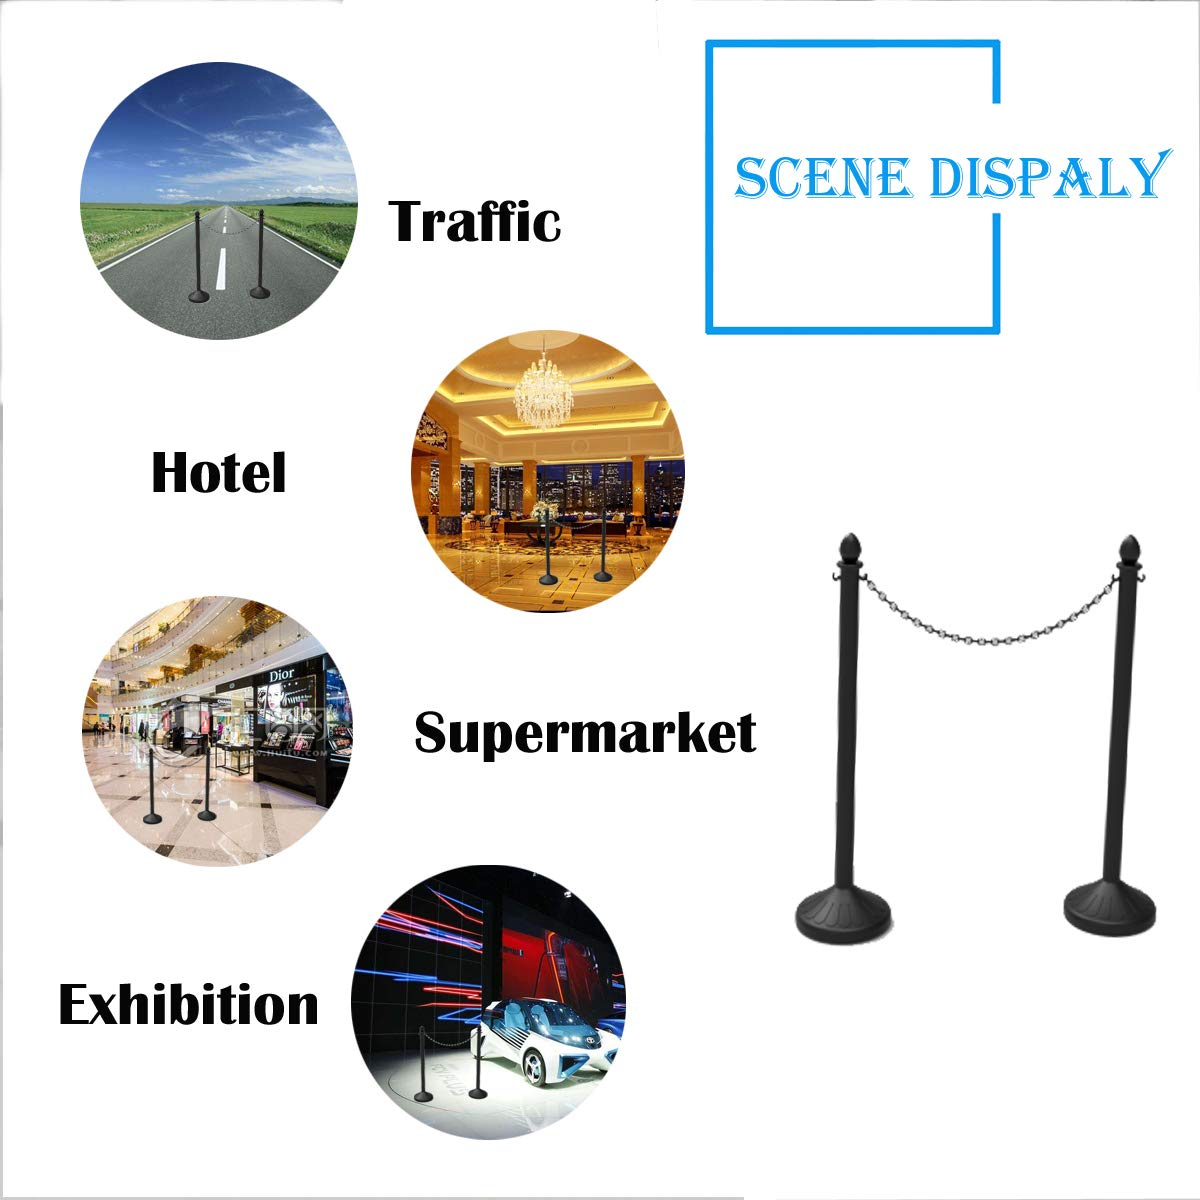 Pack of 4 Crowd Control Stands Black Plastic Stanchion Posts Set Barrier with 3PCS 40 Link Chain and C-Hooks